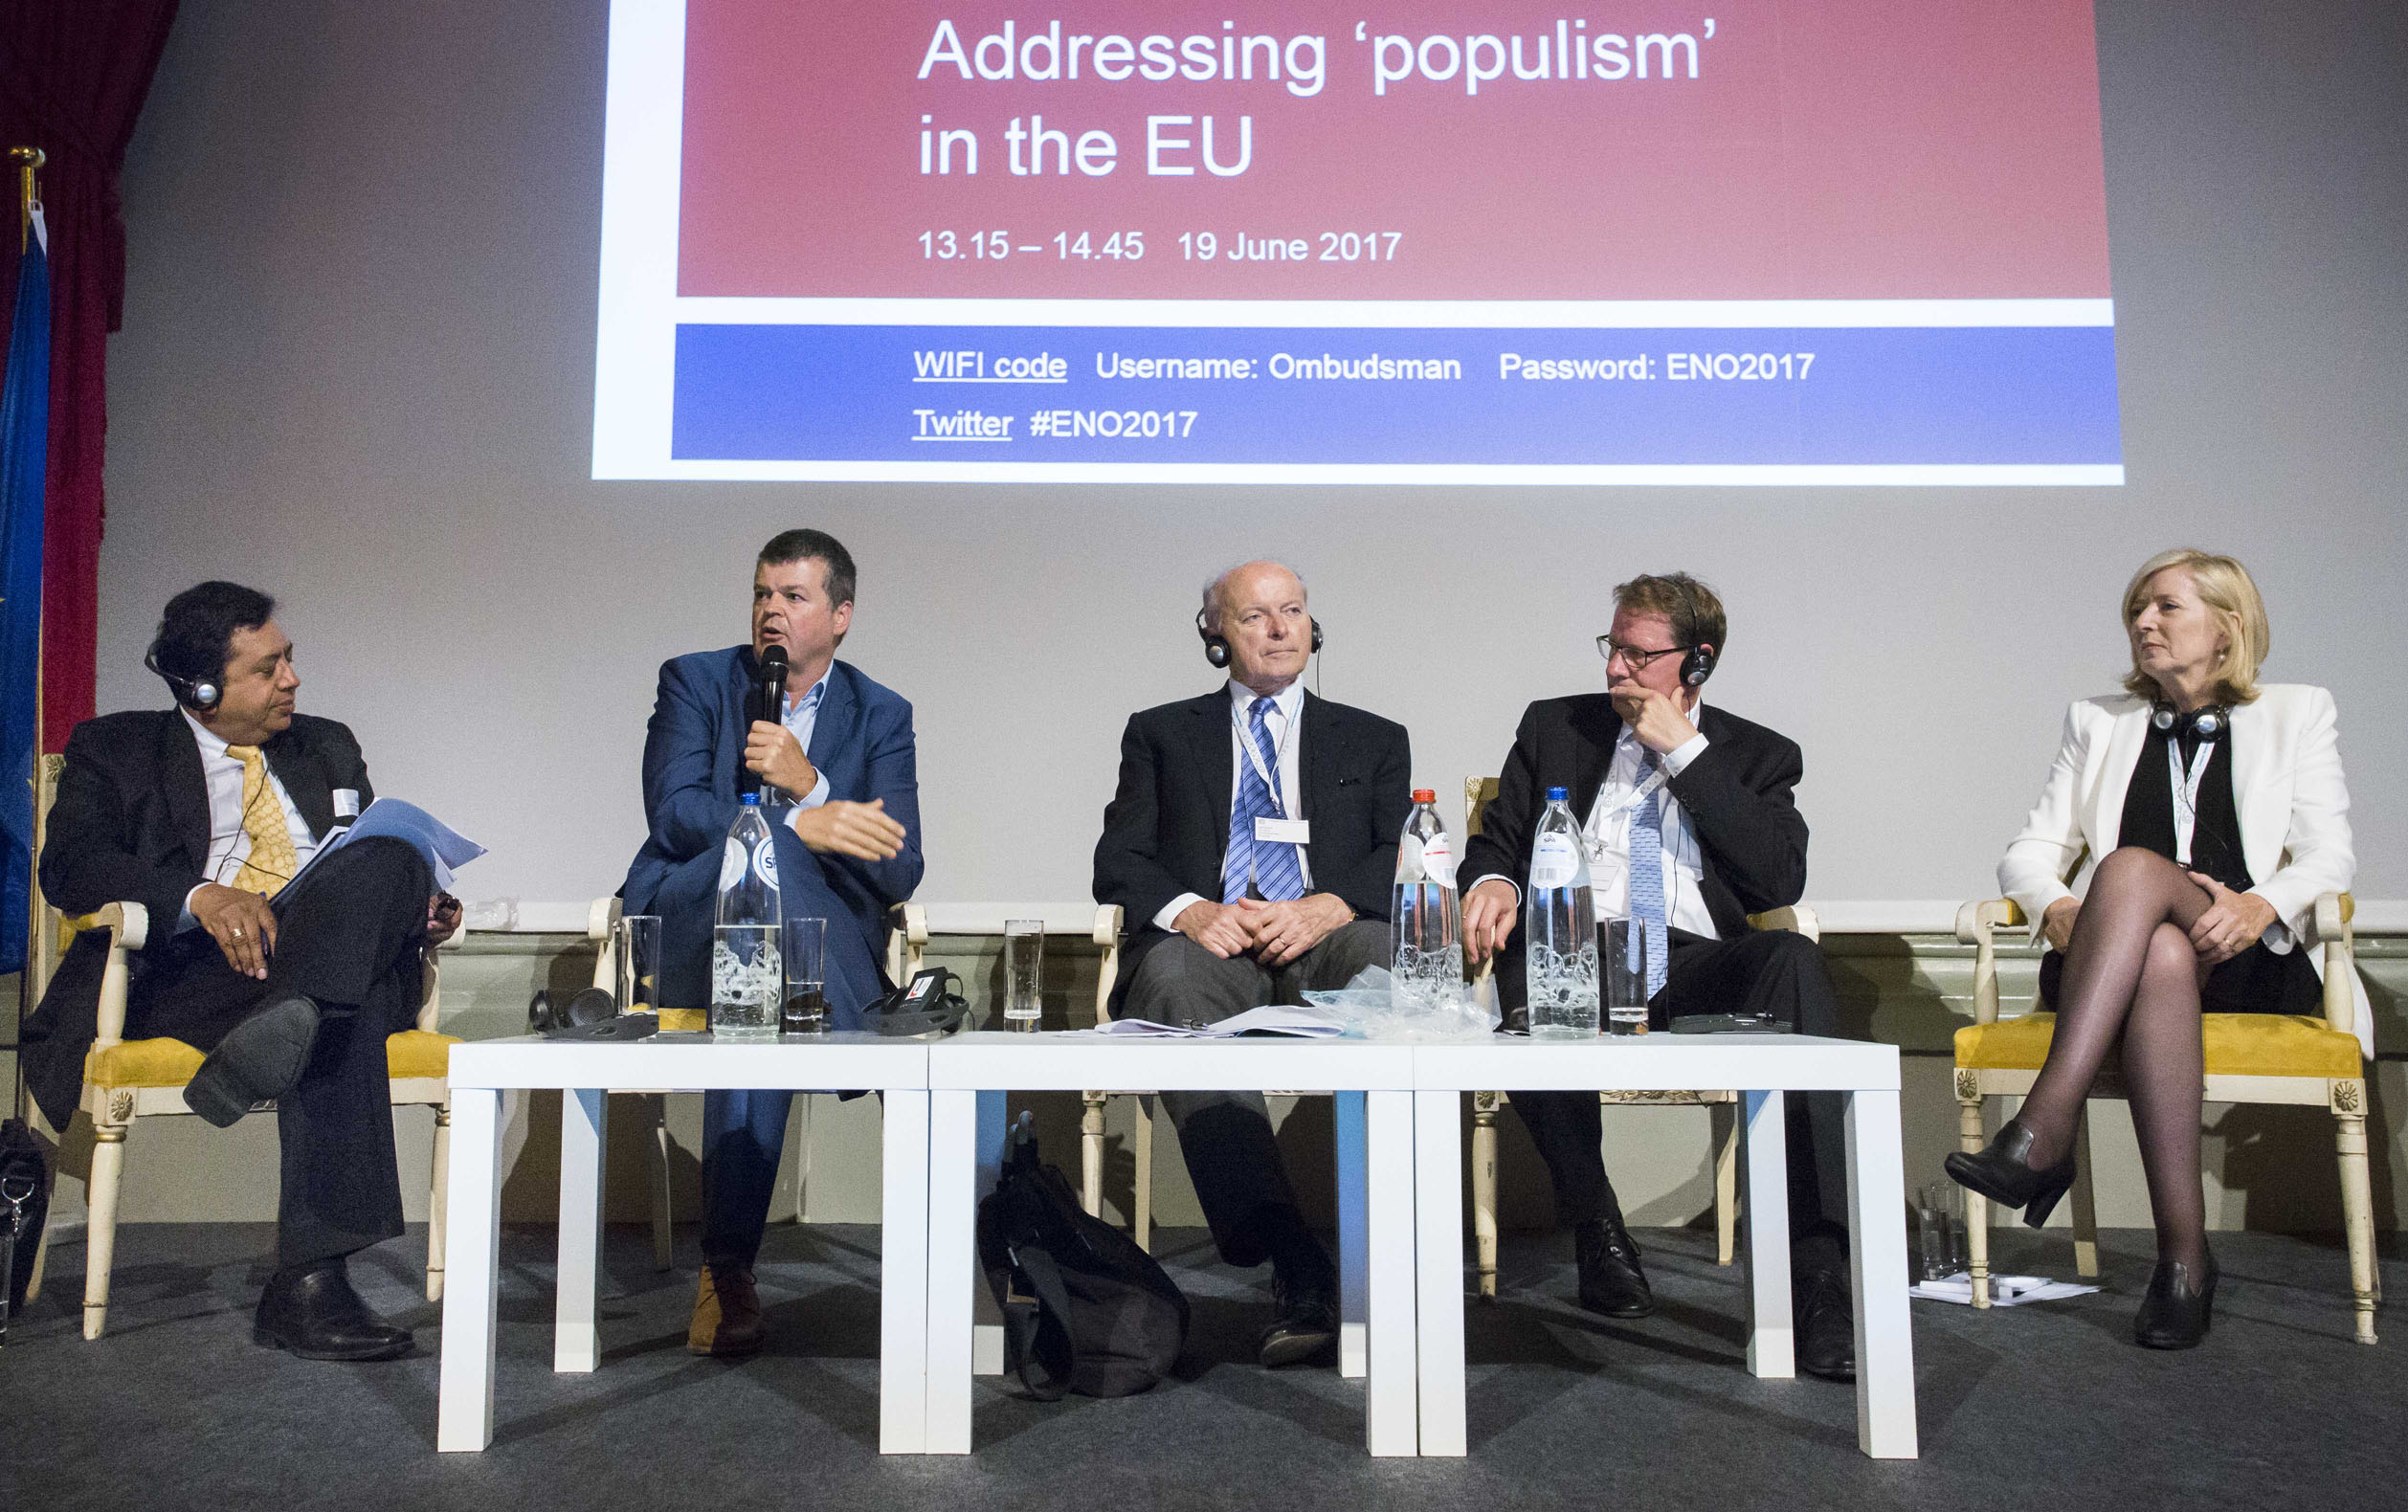 The panellists of the first session of the 2017 conference of the European Network of Ombudsmen (left to right): Sanjay Pradhan, Chief Executive Officer, Open Government Partnership; Bart Somers, Mayor of Mechelen in Belgium; Jacques Toubon, Defender of Rights of France; Gero Storjohann, Deputy Chair of the German Federal Petitions Committee; and Emily O'Reilly, European Ombudsman.